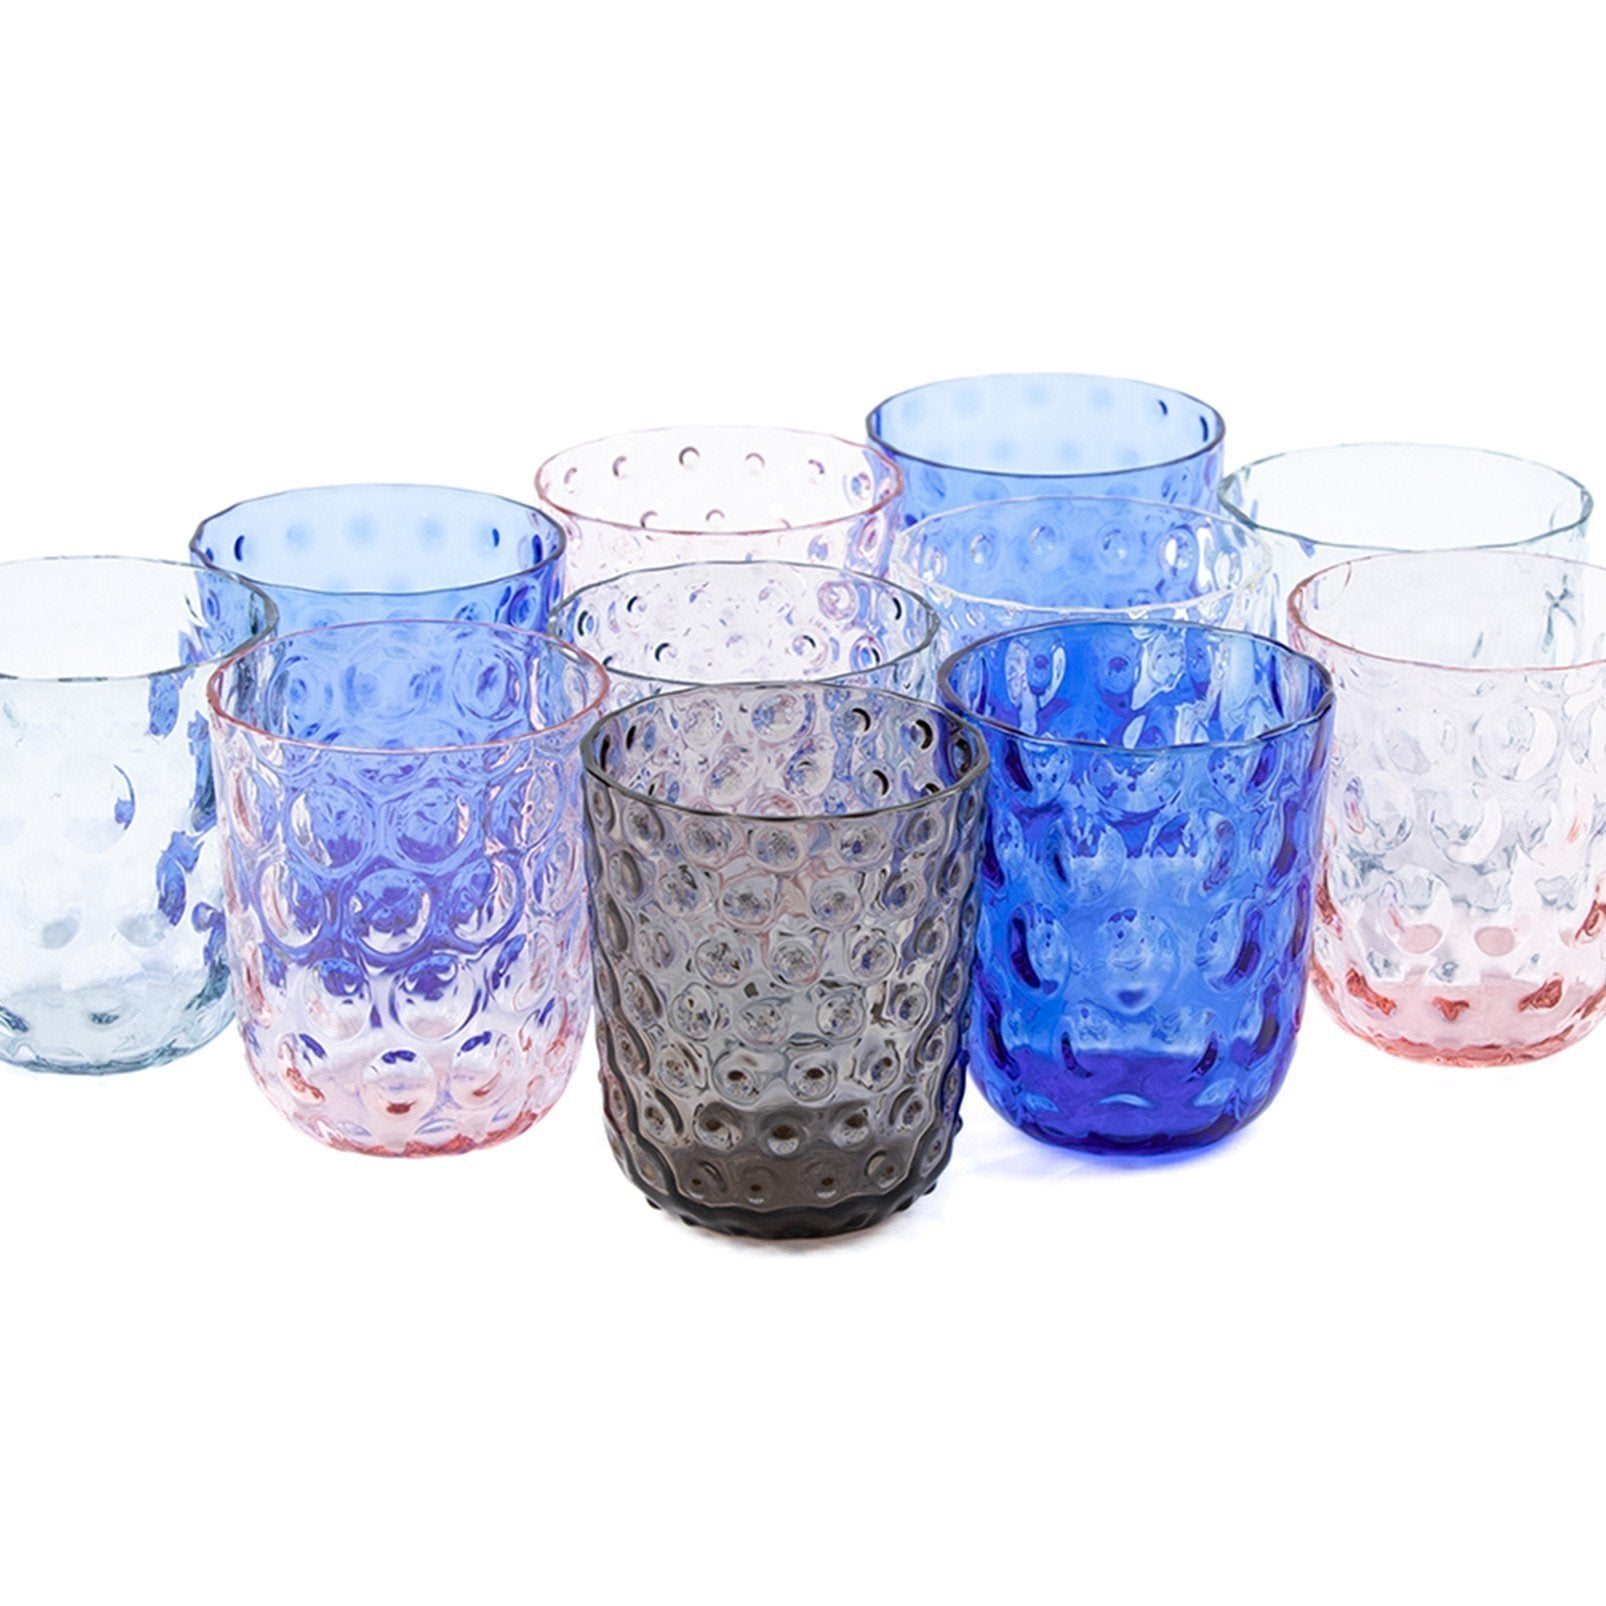 Kodanska Danish Summer Tumbler Small Drops Blue Smoke, S